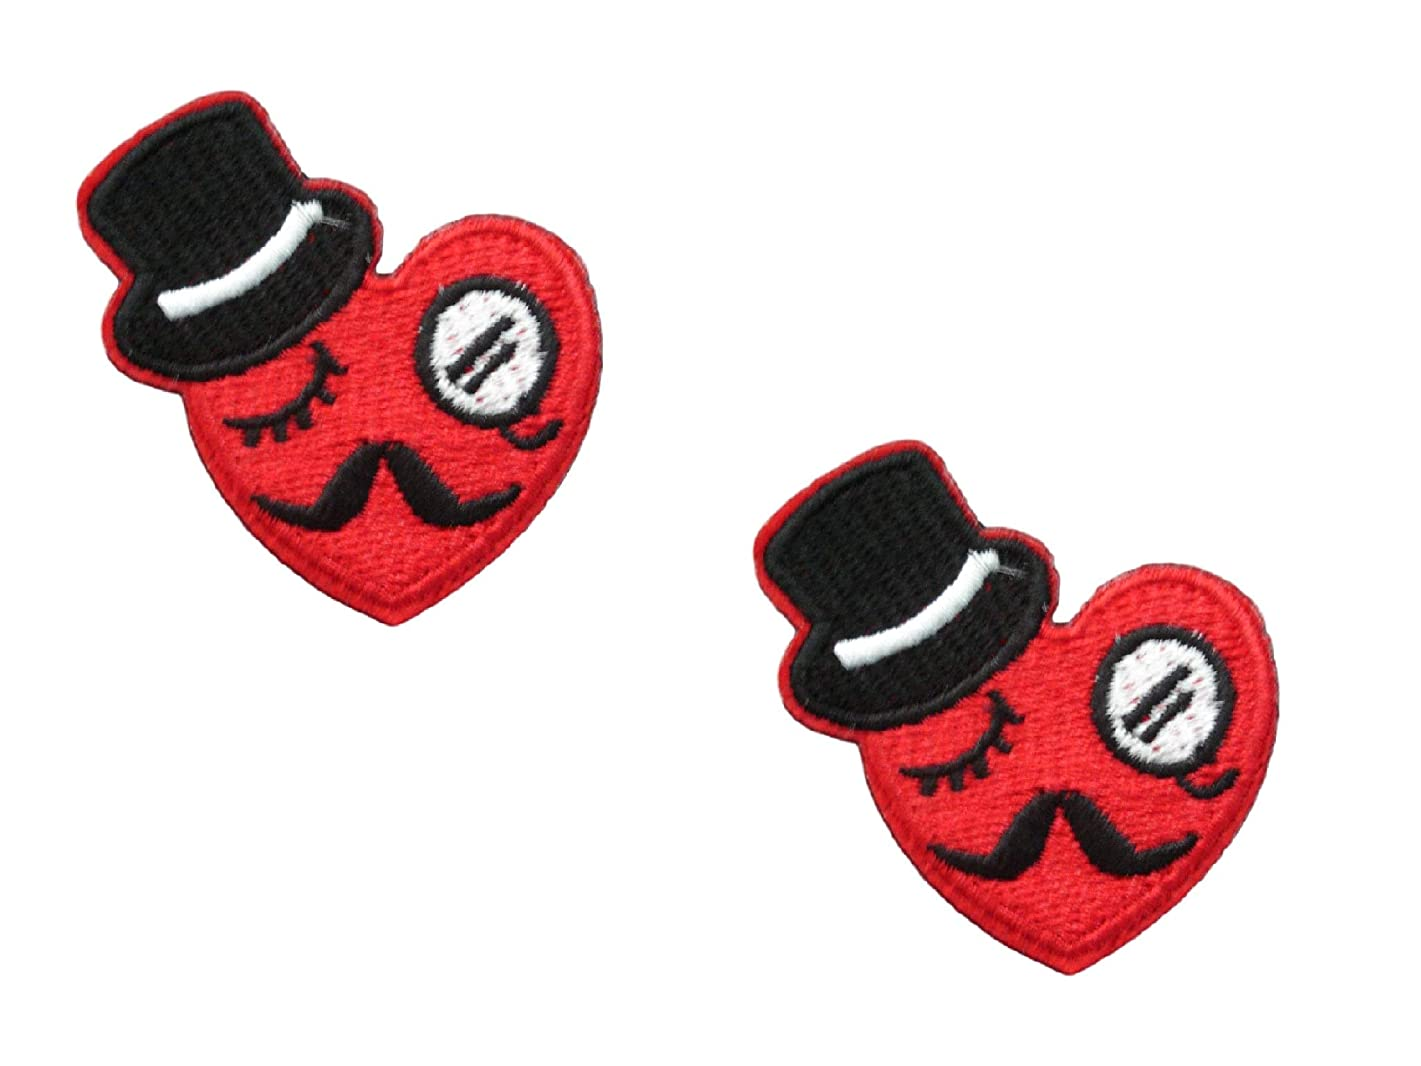 2 Pieces Red Moustache Heart Iron On Patch Applique Embroidered Motif Fabric Love Scrapbooking Decal 1.9 x 1.9 inches (4.75 x 4.75 cm)